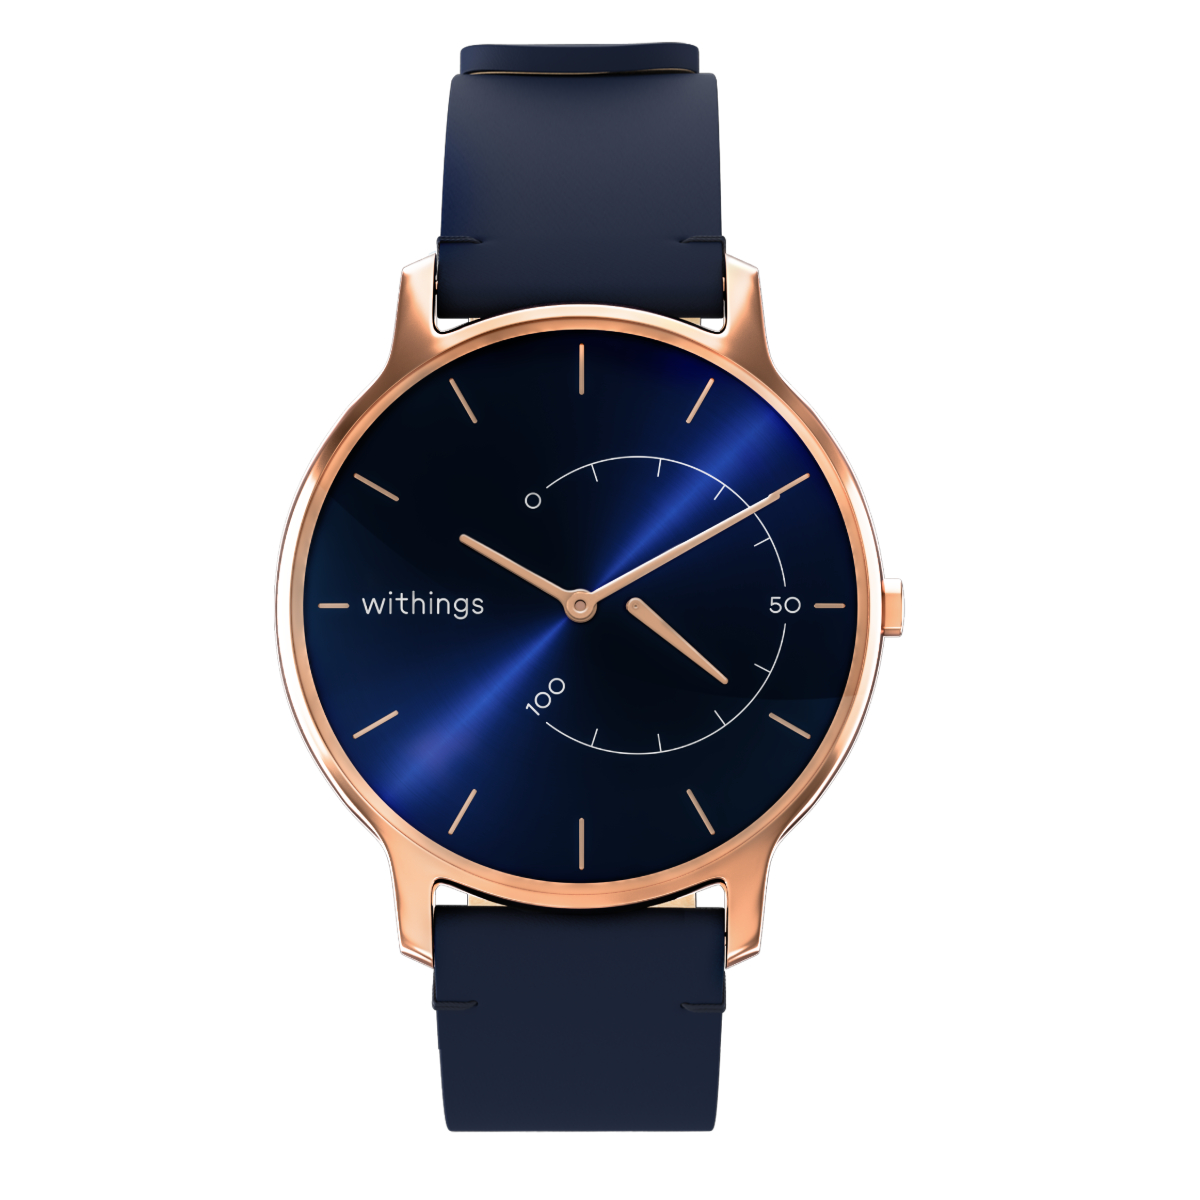 Withings Move Timeless Chic, 38mm, Blue & Rose Gold - Activity tracking watch - Sleep analysis, Water resistant - Withings Official Store